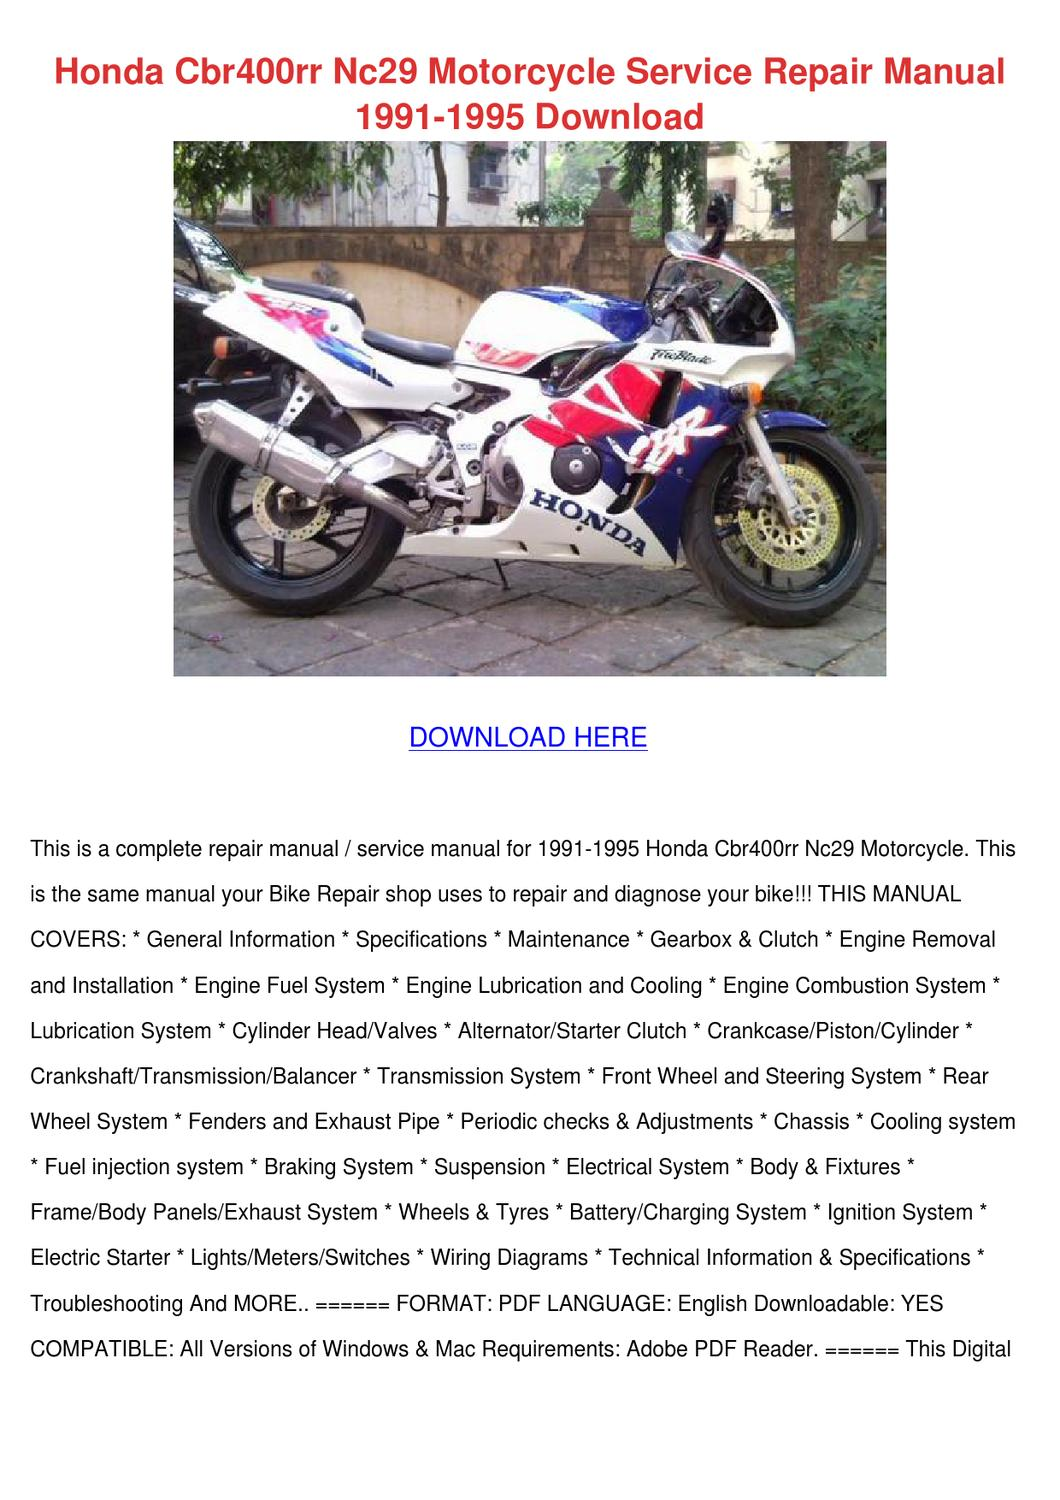 Honda Cbr400rr Nc29 Motorcycle Service Repair By